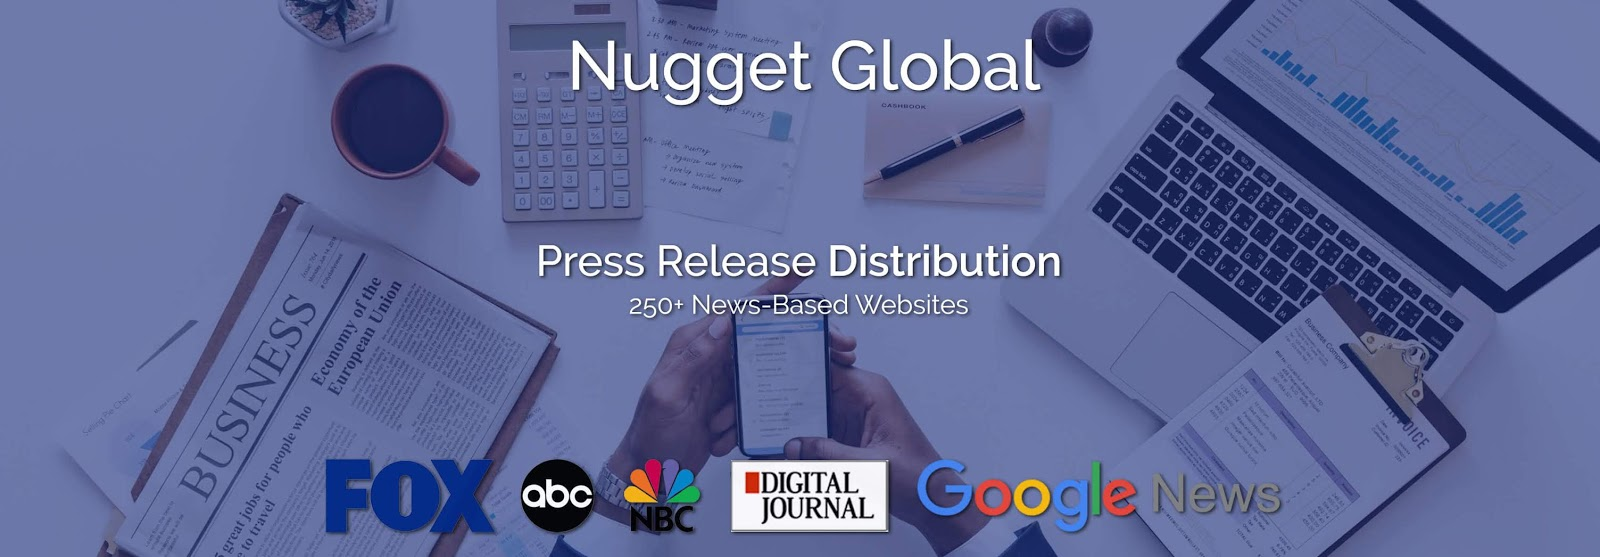 Distribute your press release to 250+ news-based websites, including Google News, FOX, ABC, NBC, Digital Journal and many more.